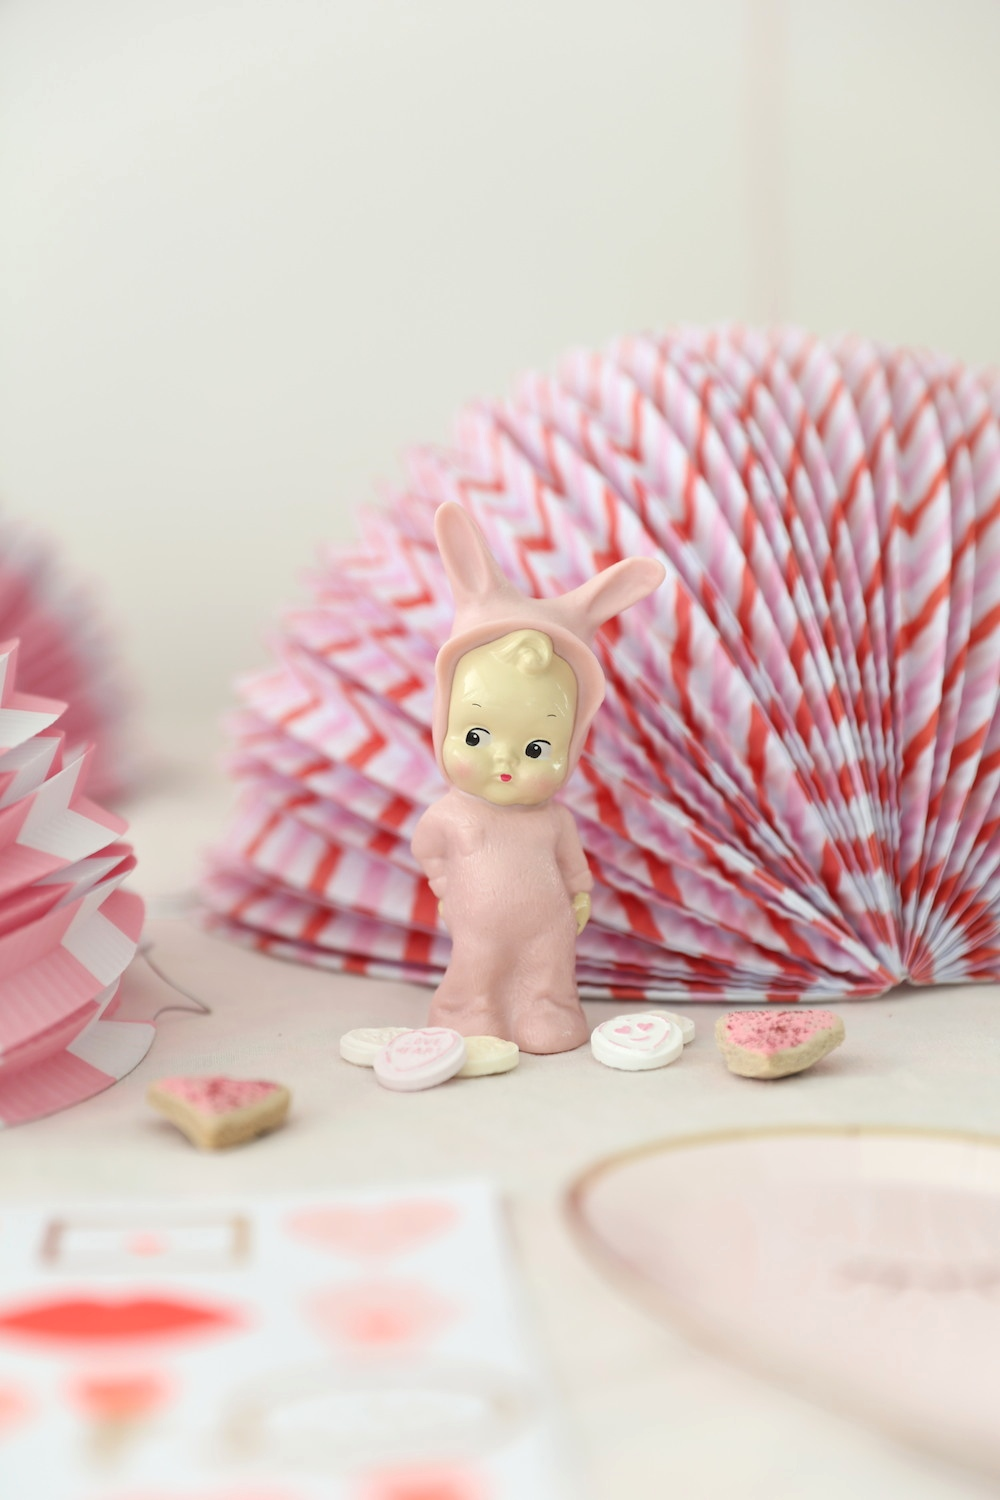 Lapin_and_me_baby_figure_pink_retro